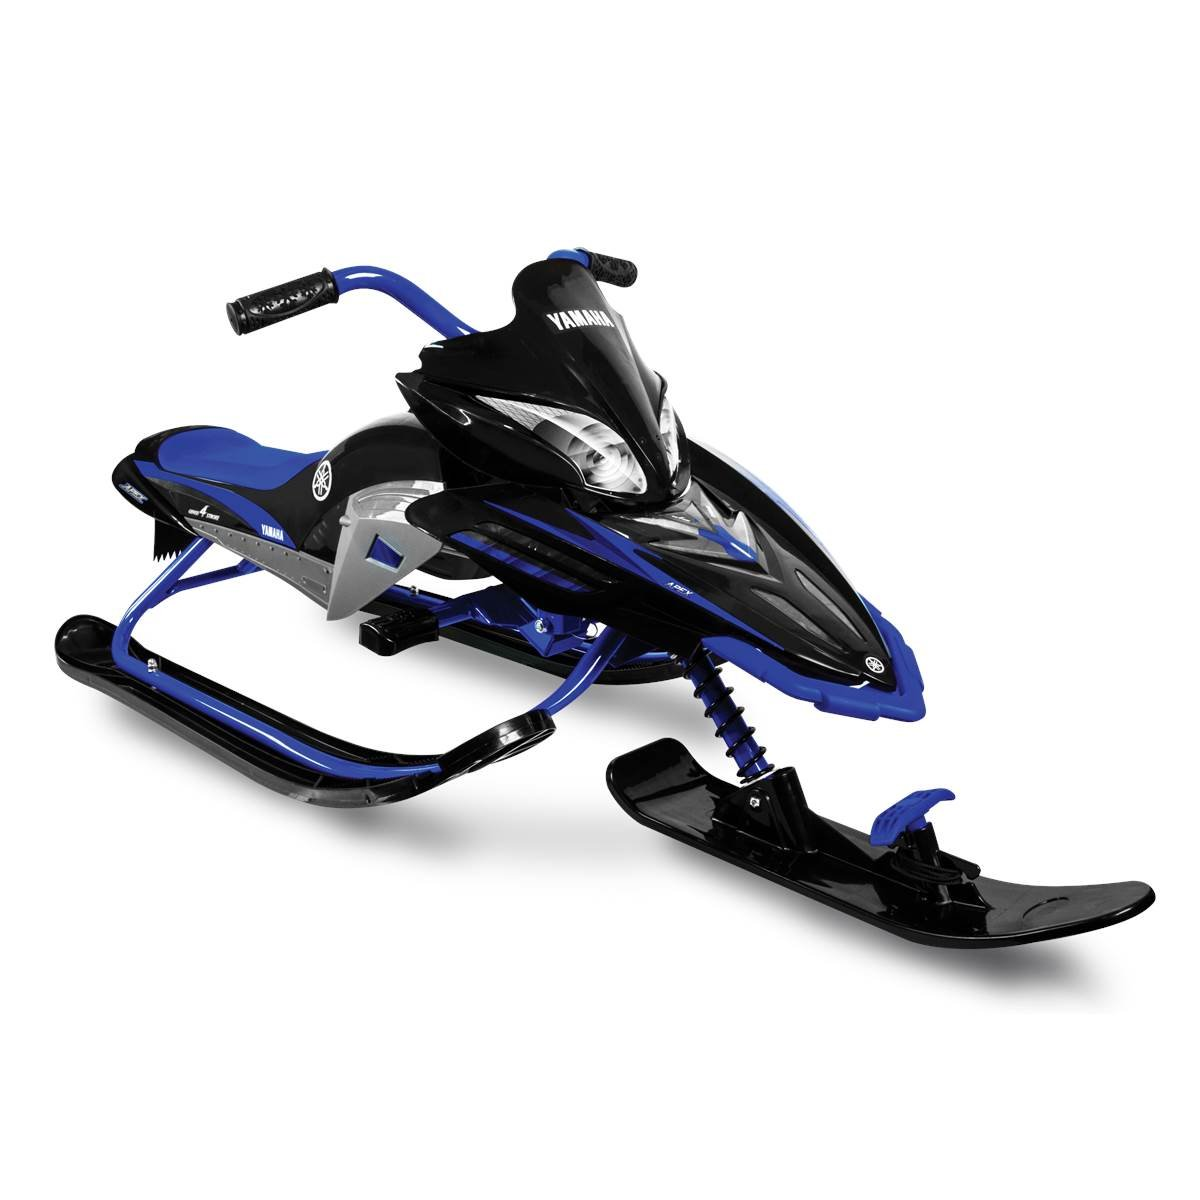 Yamaha 1-Rider Apex Snow Bike/Sled for Kids (Blue/Black) by Yamaha`